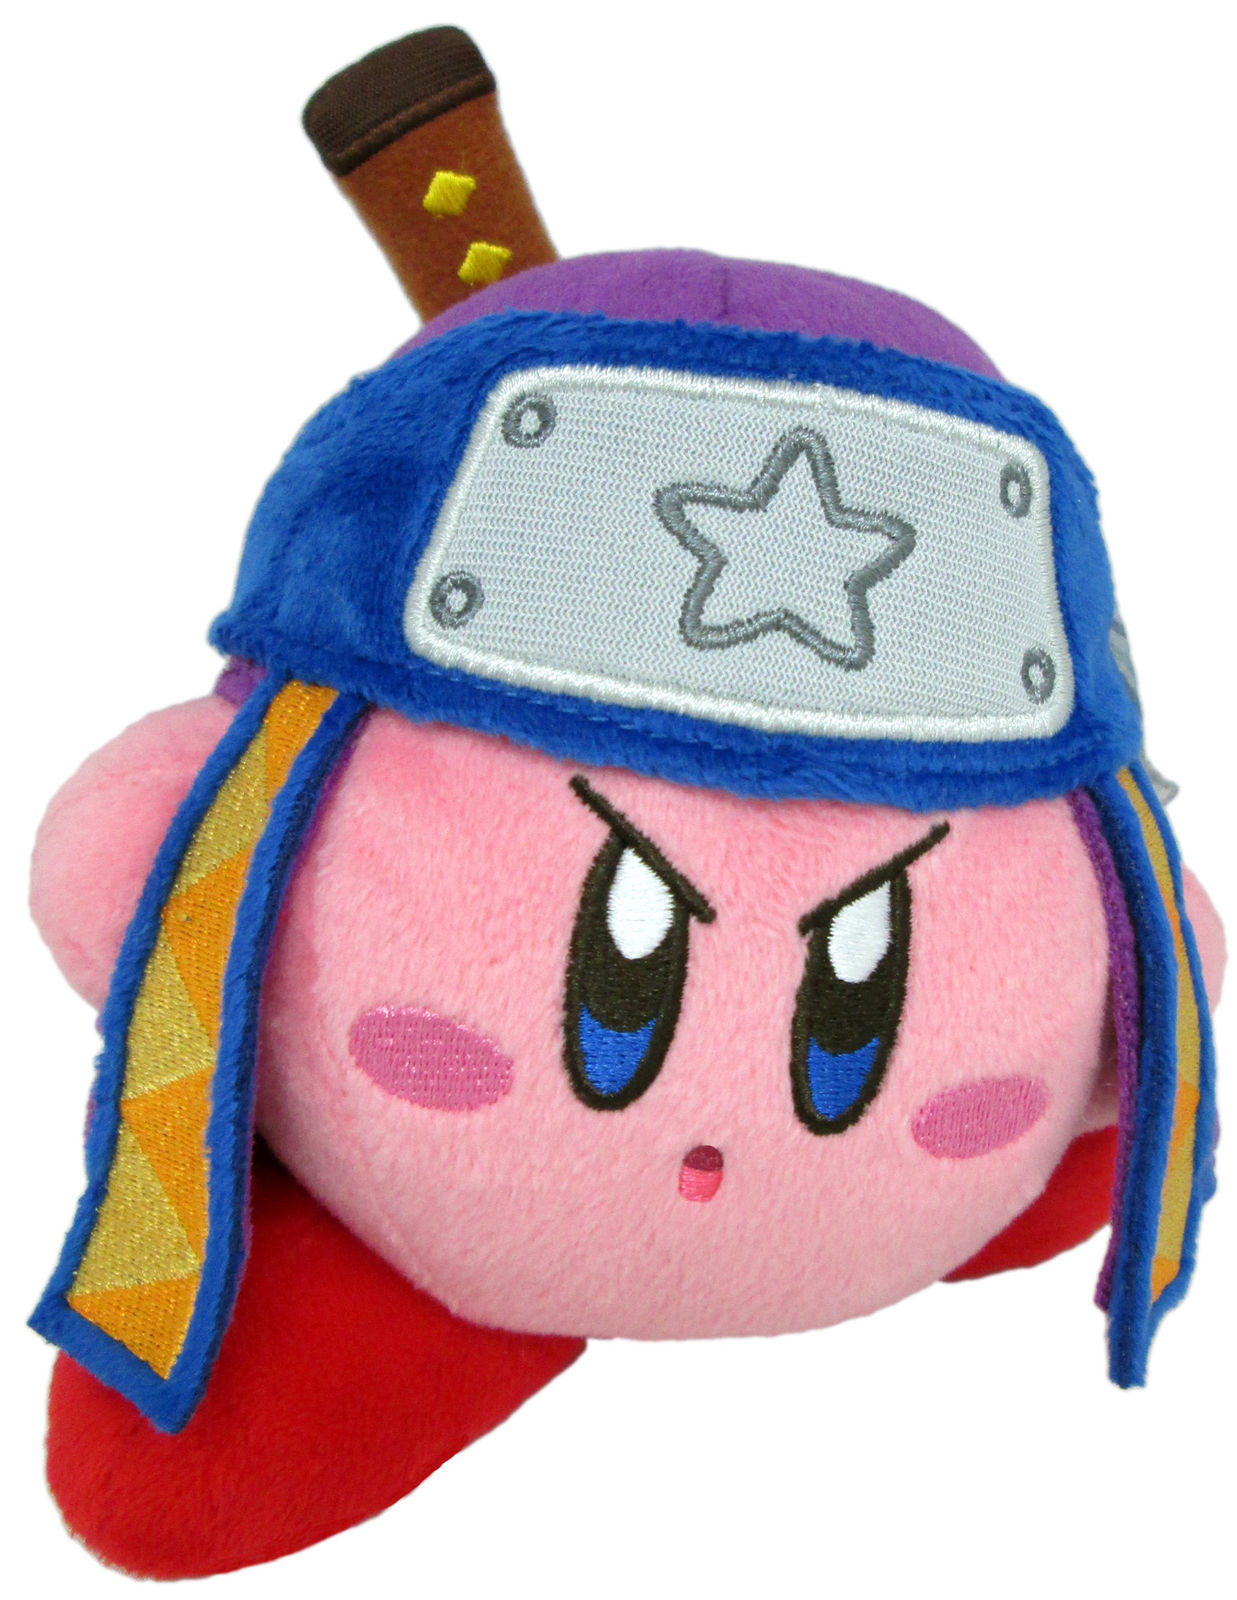 "Kirby Plush Kirby Ninja Version 2 6"" image"